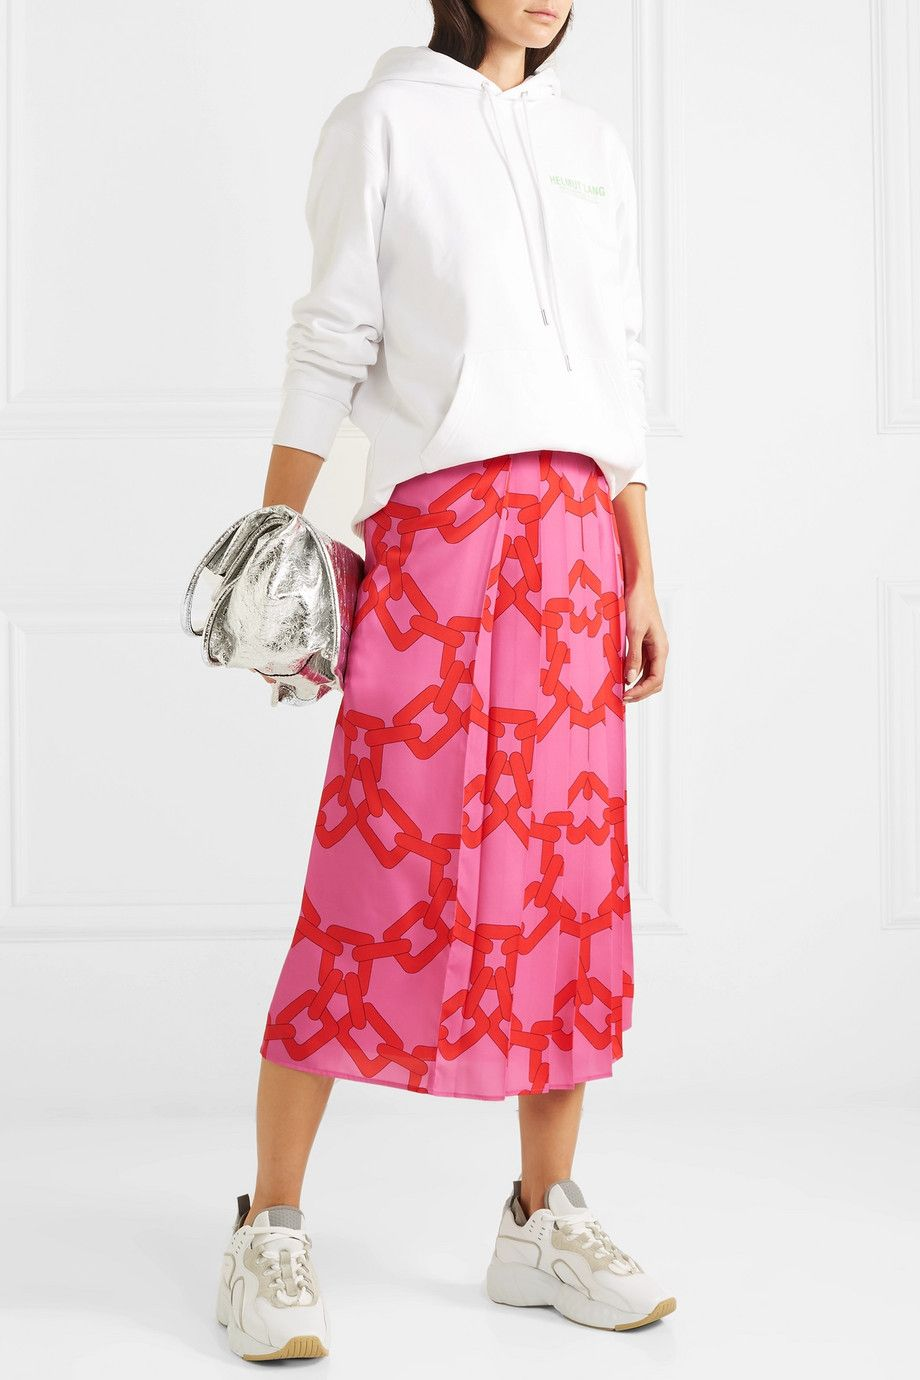 msgm-pleated-printed-red-pink-midi-skirt